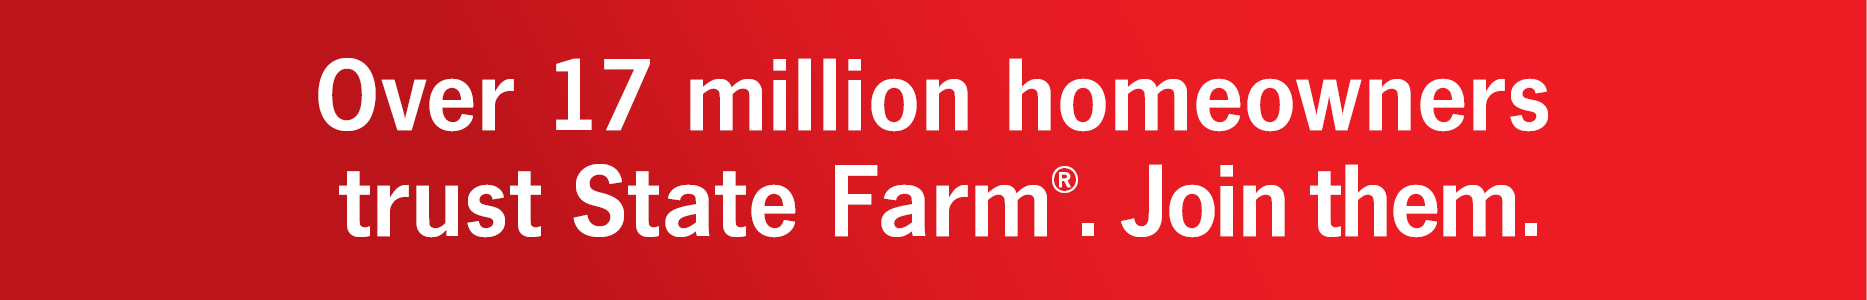 Over 17M homeowners trust State Farm. Join them.